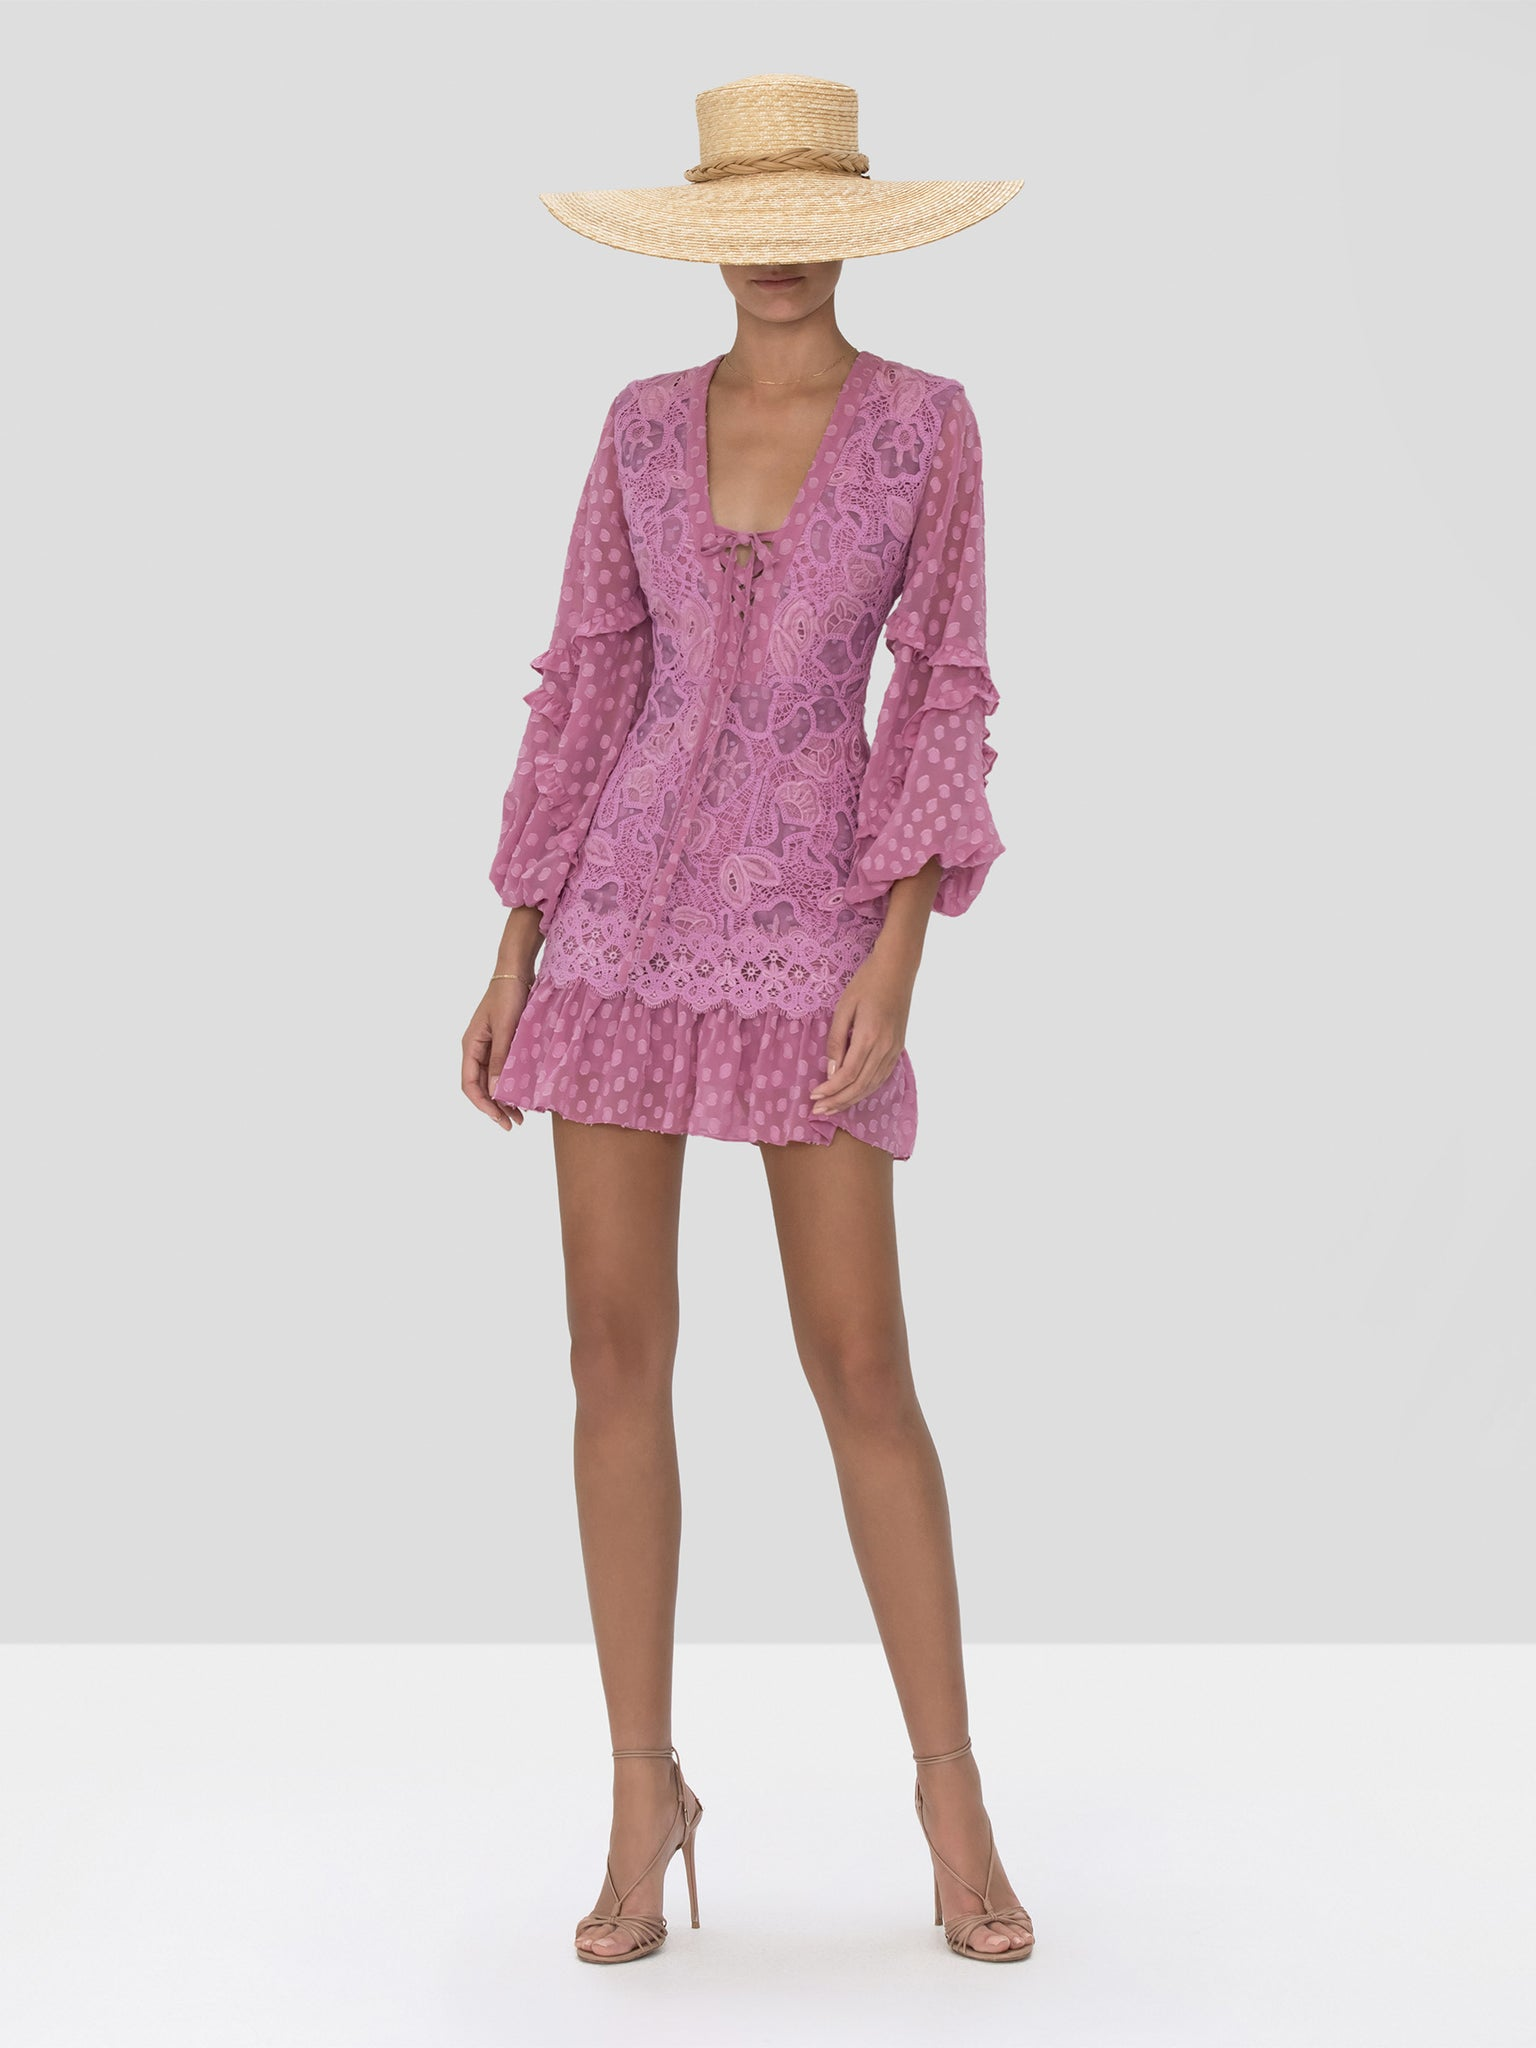 The Malicha Dress in Lilac Macrame from the Spring Summer 2020